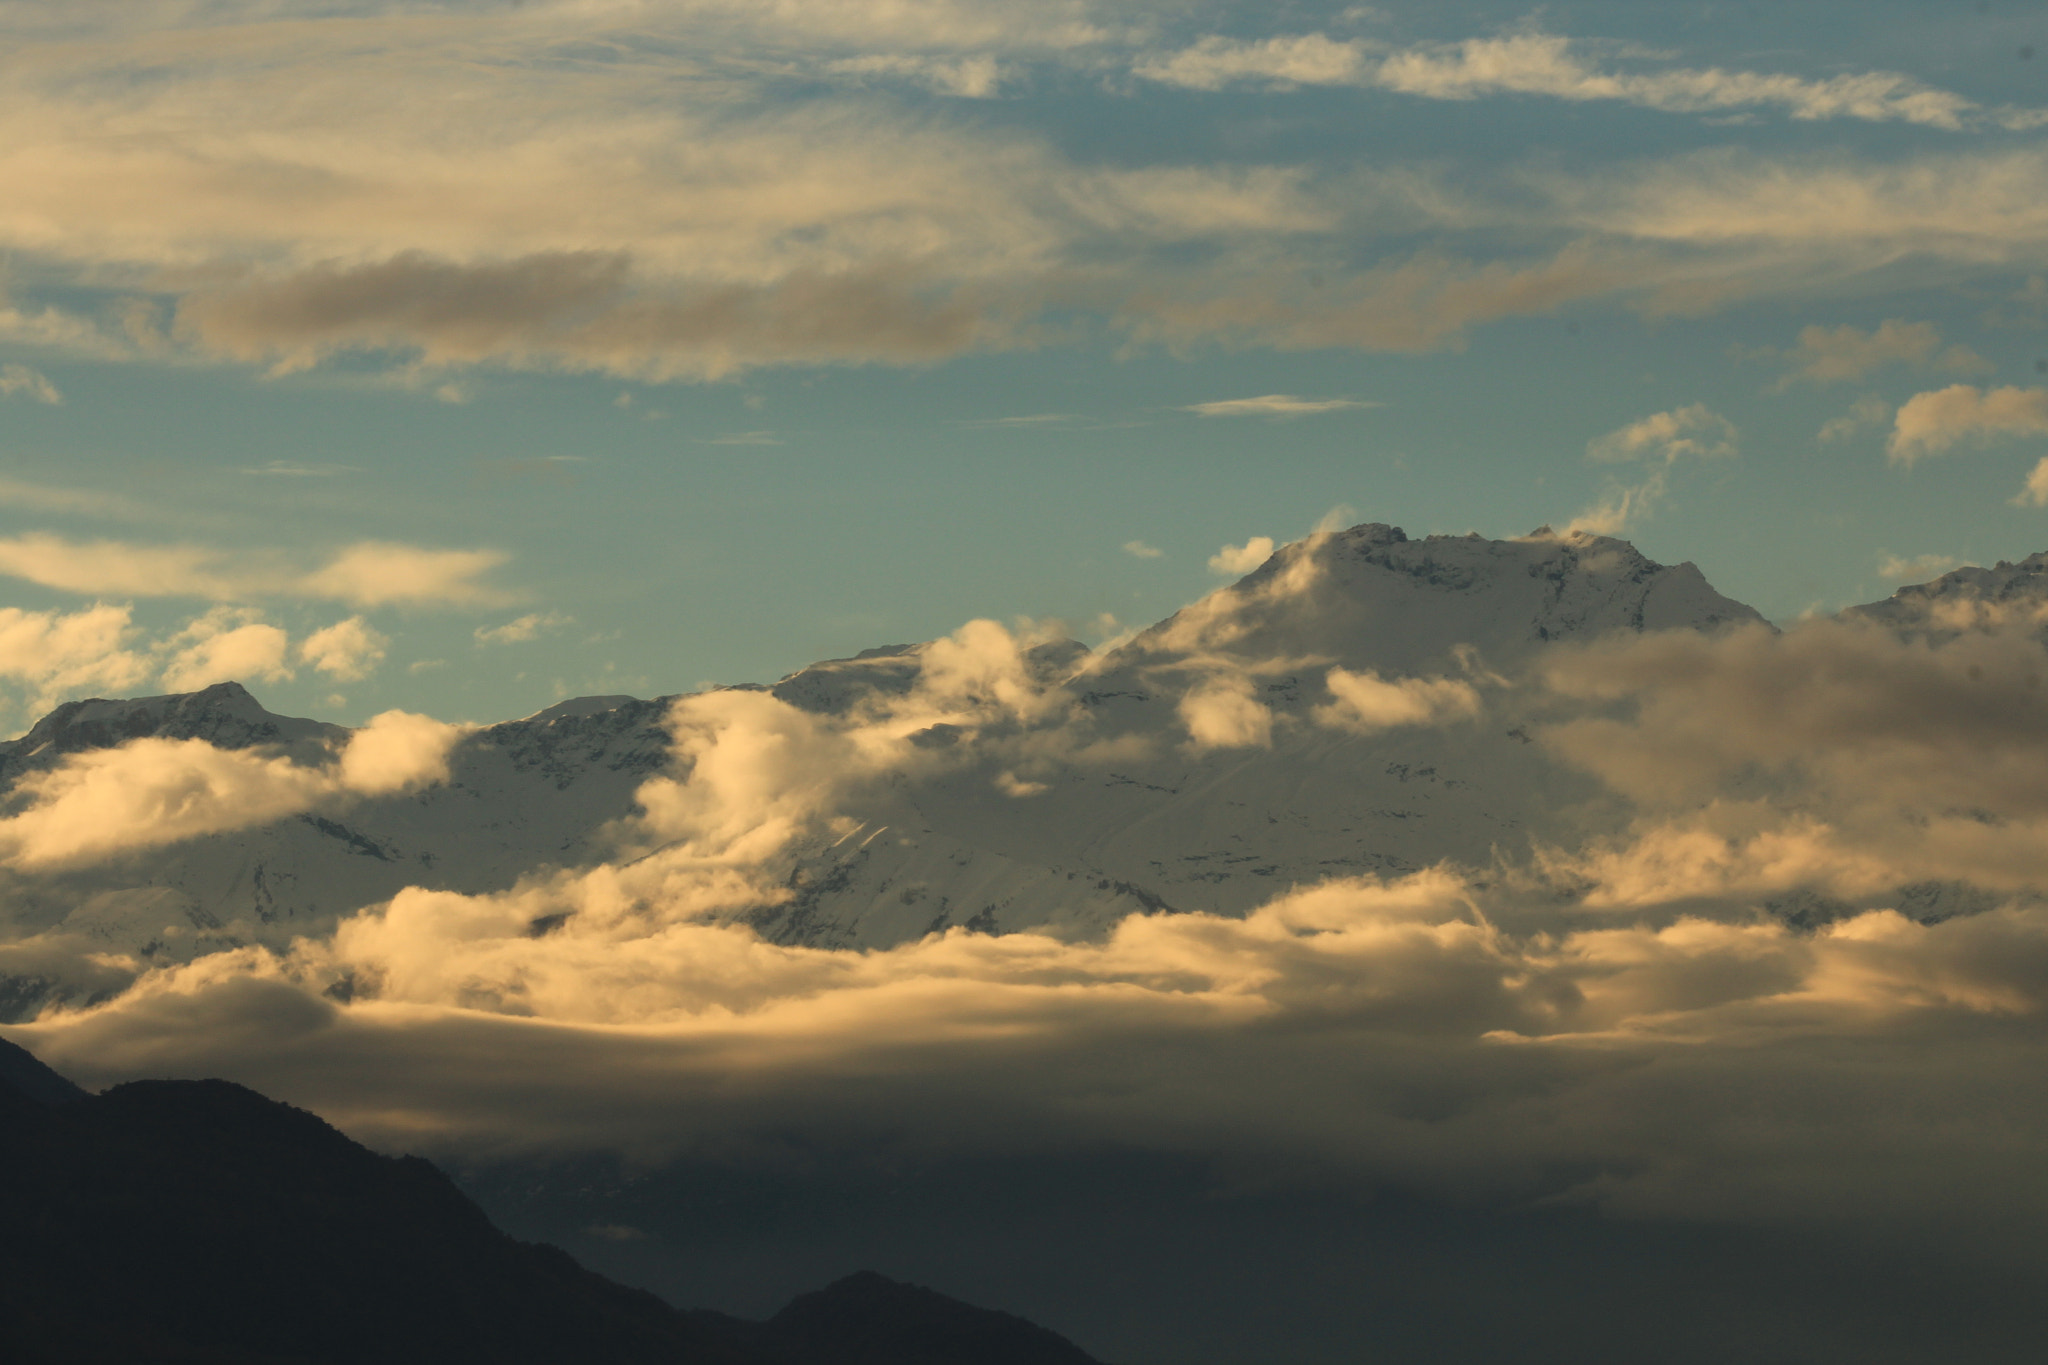 Photograph white clouds under the sun by Paola Fiore on 500px